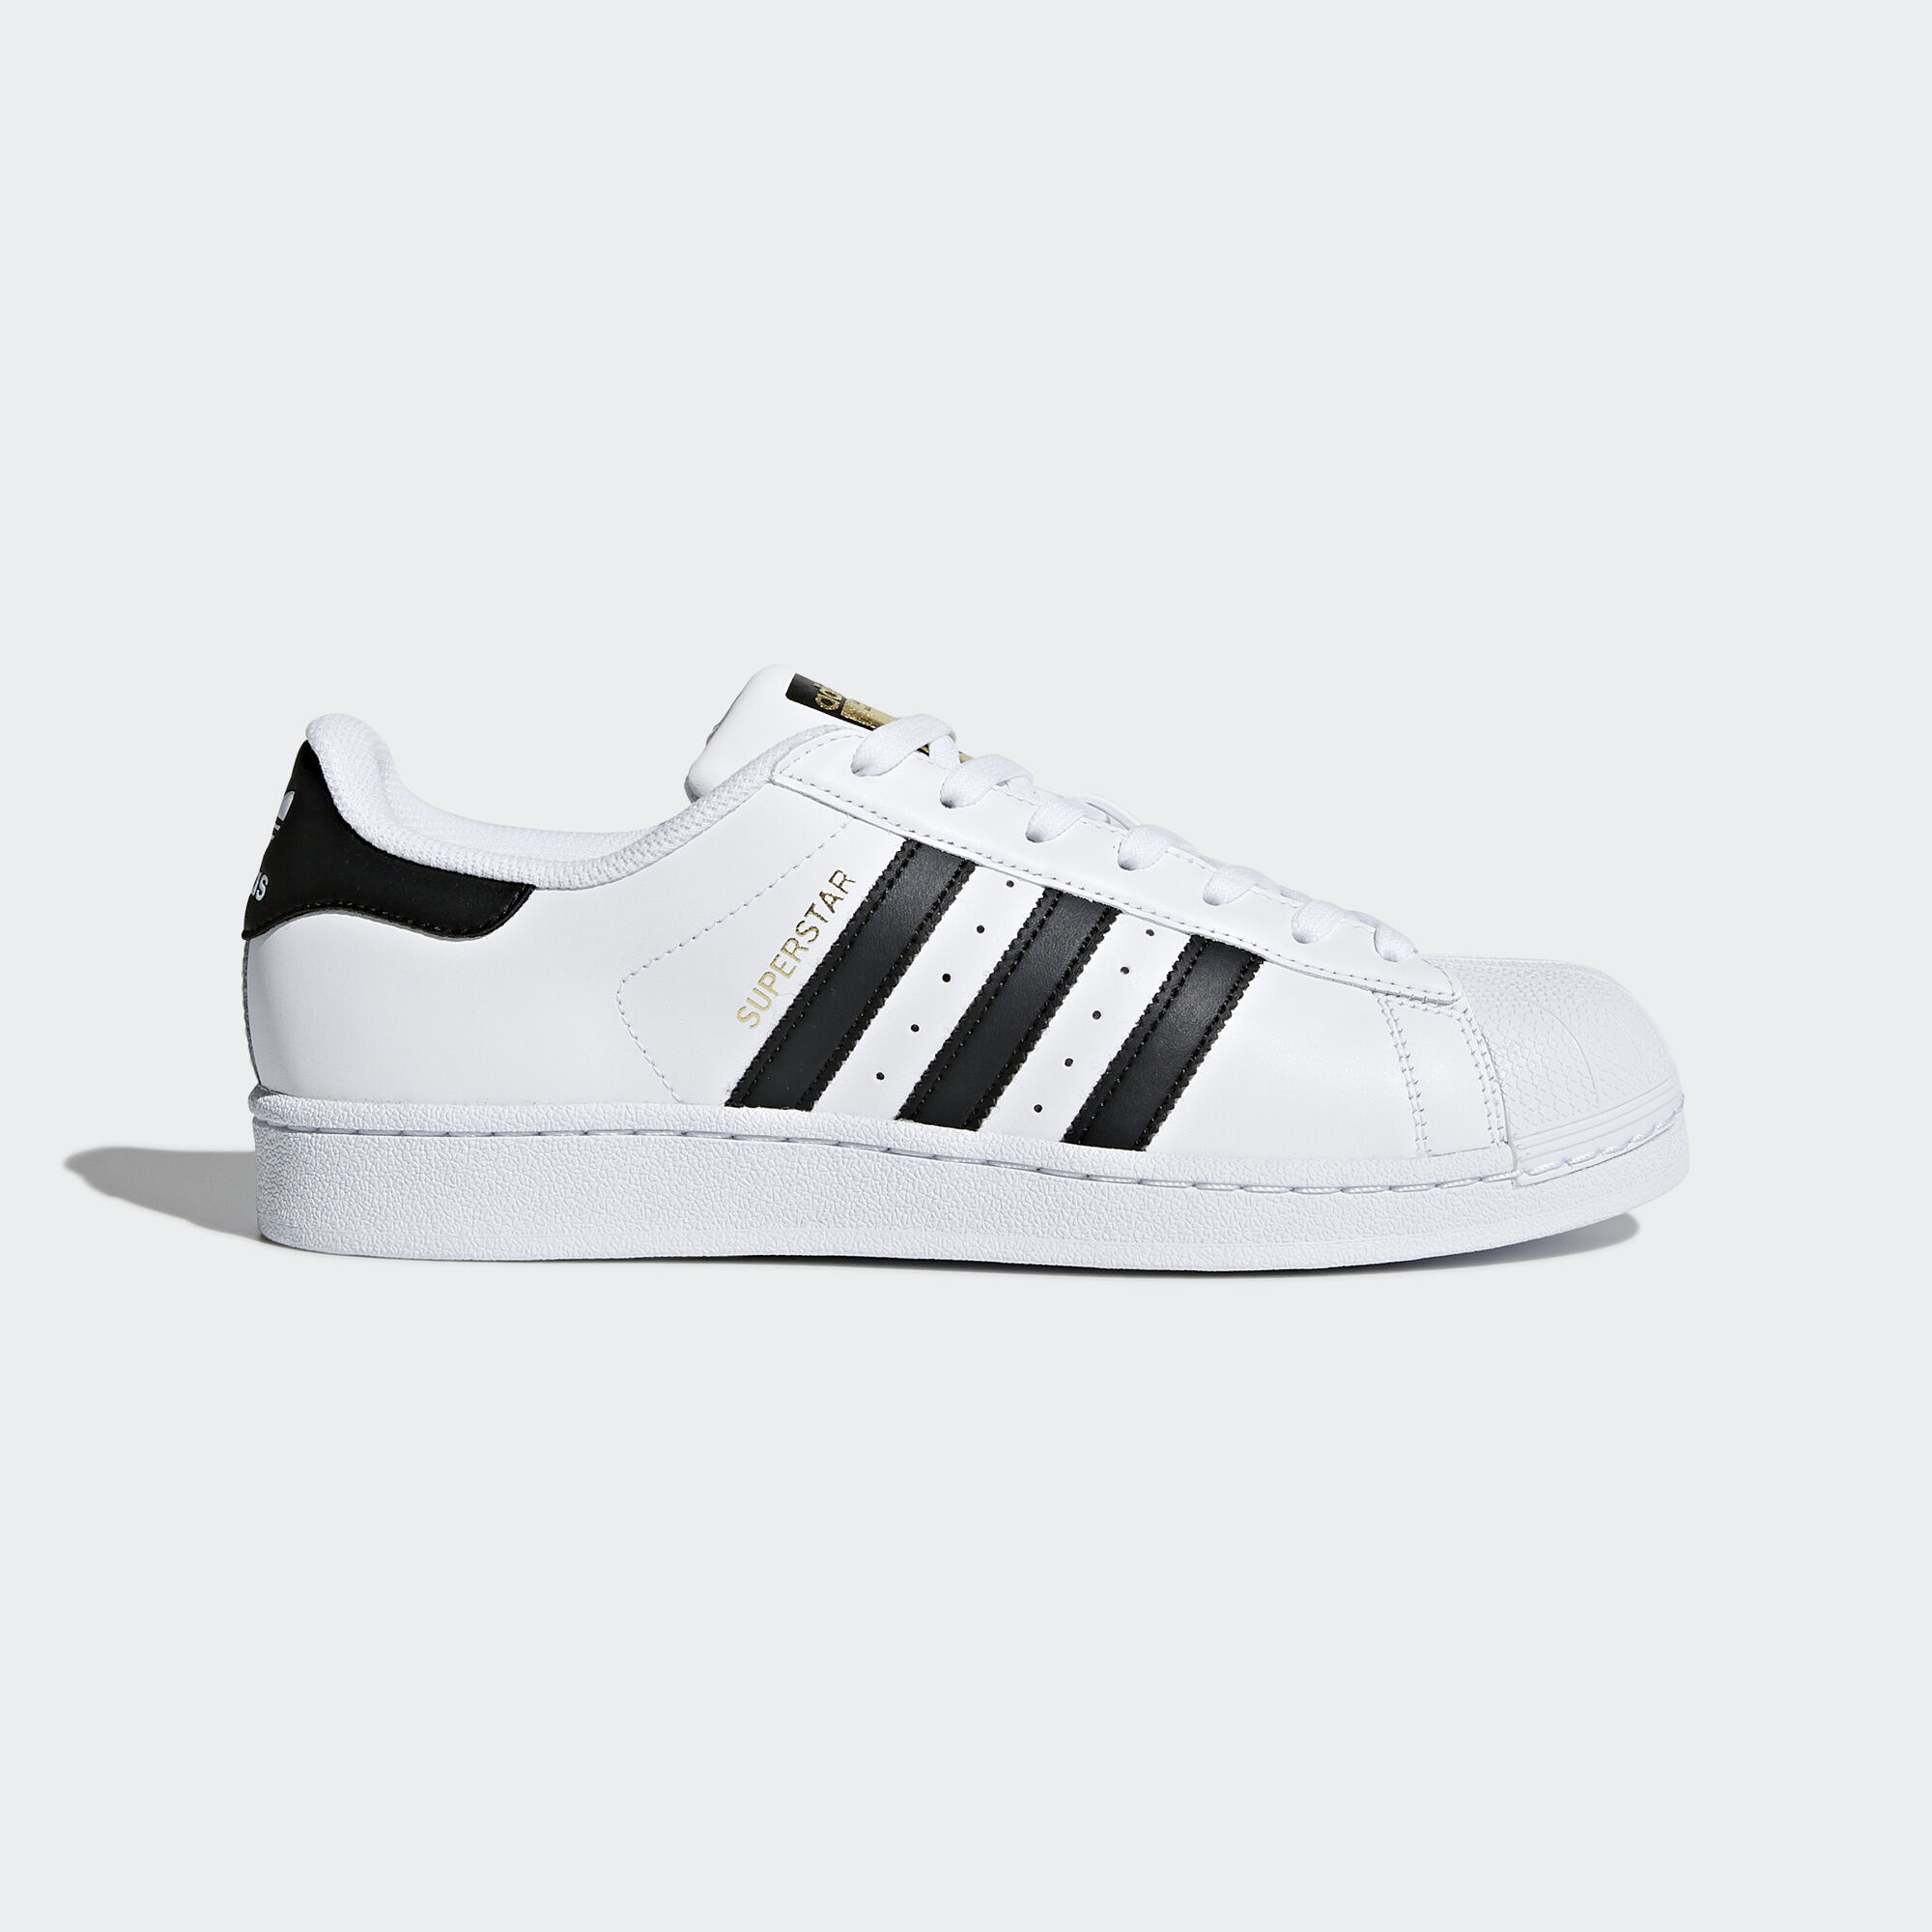 image: adidas superstar [1]